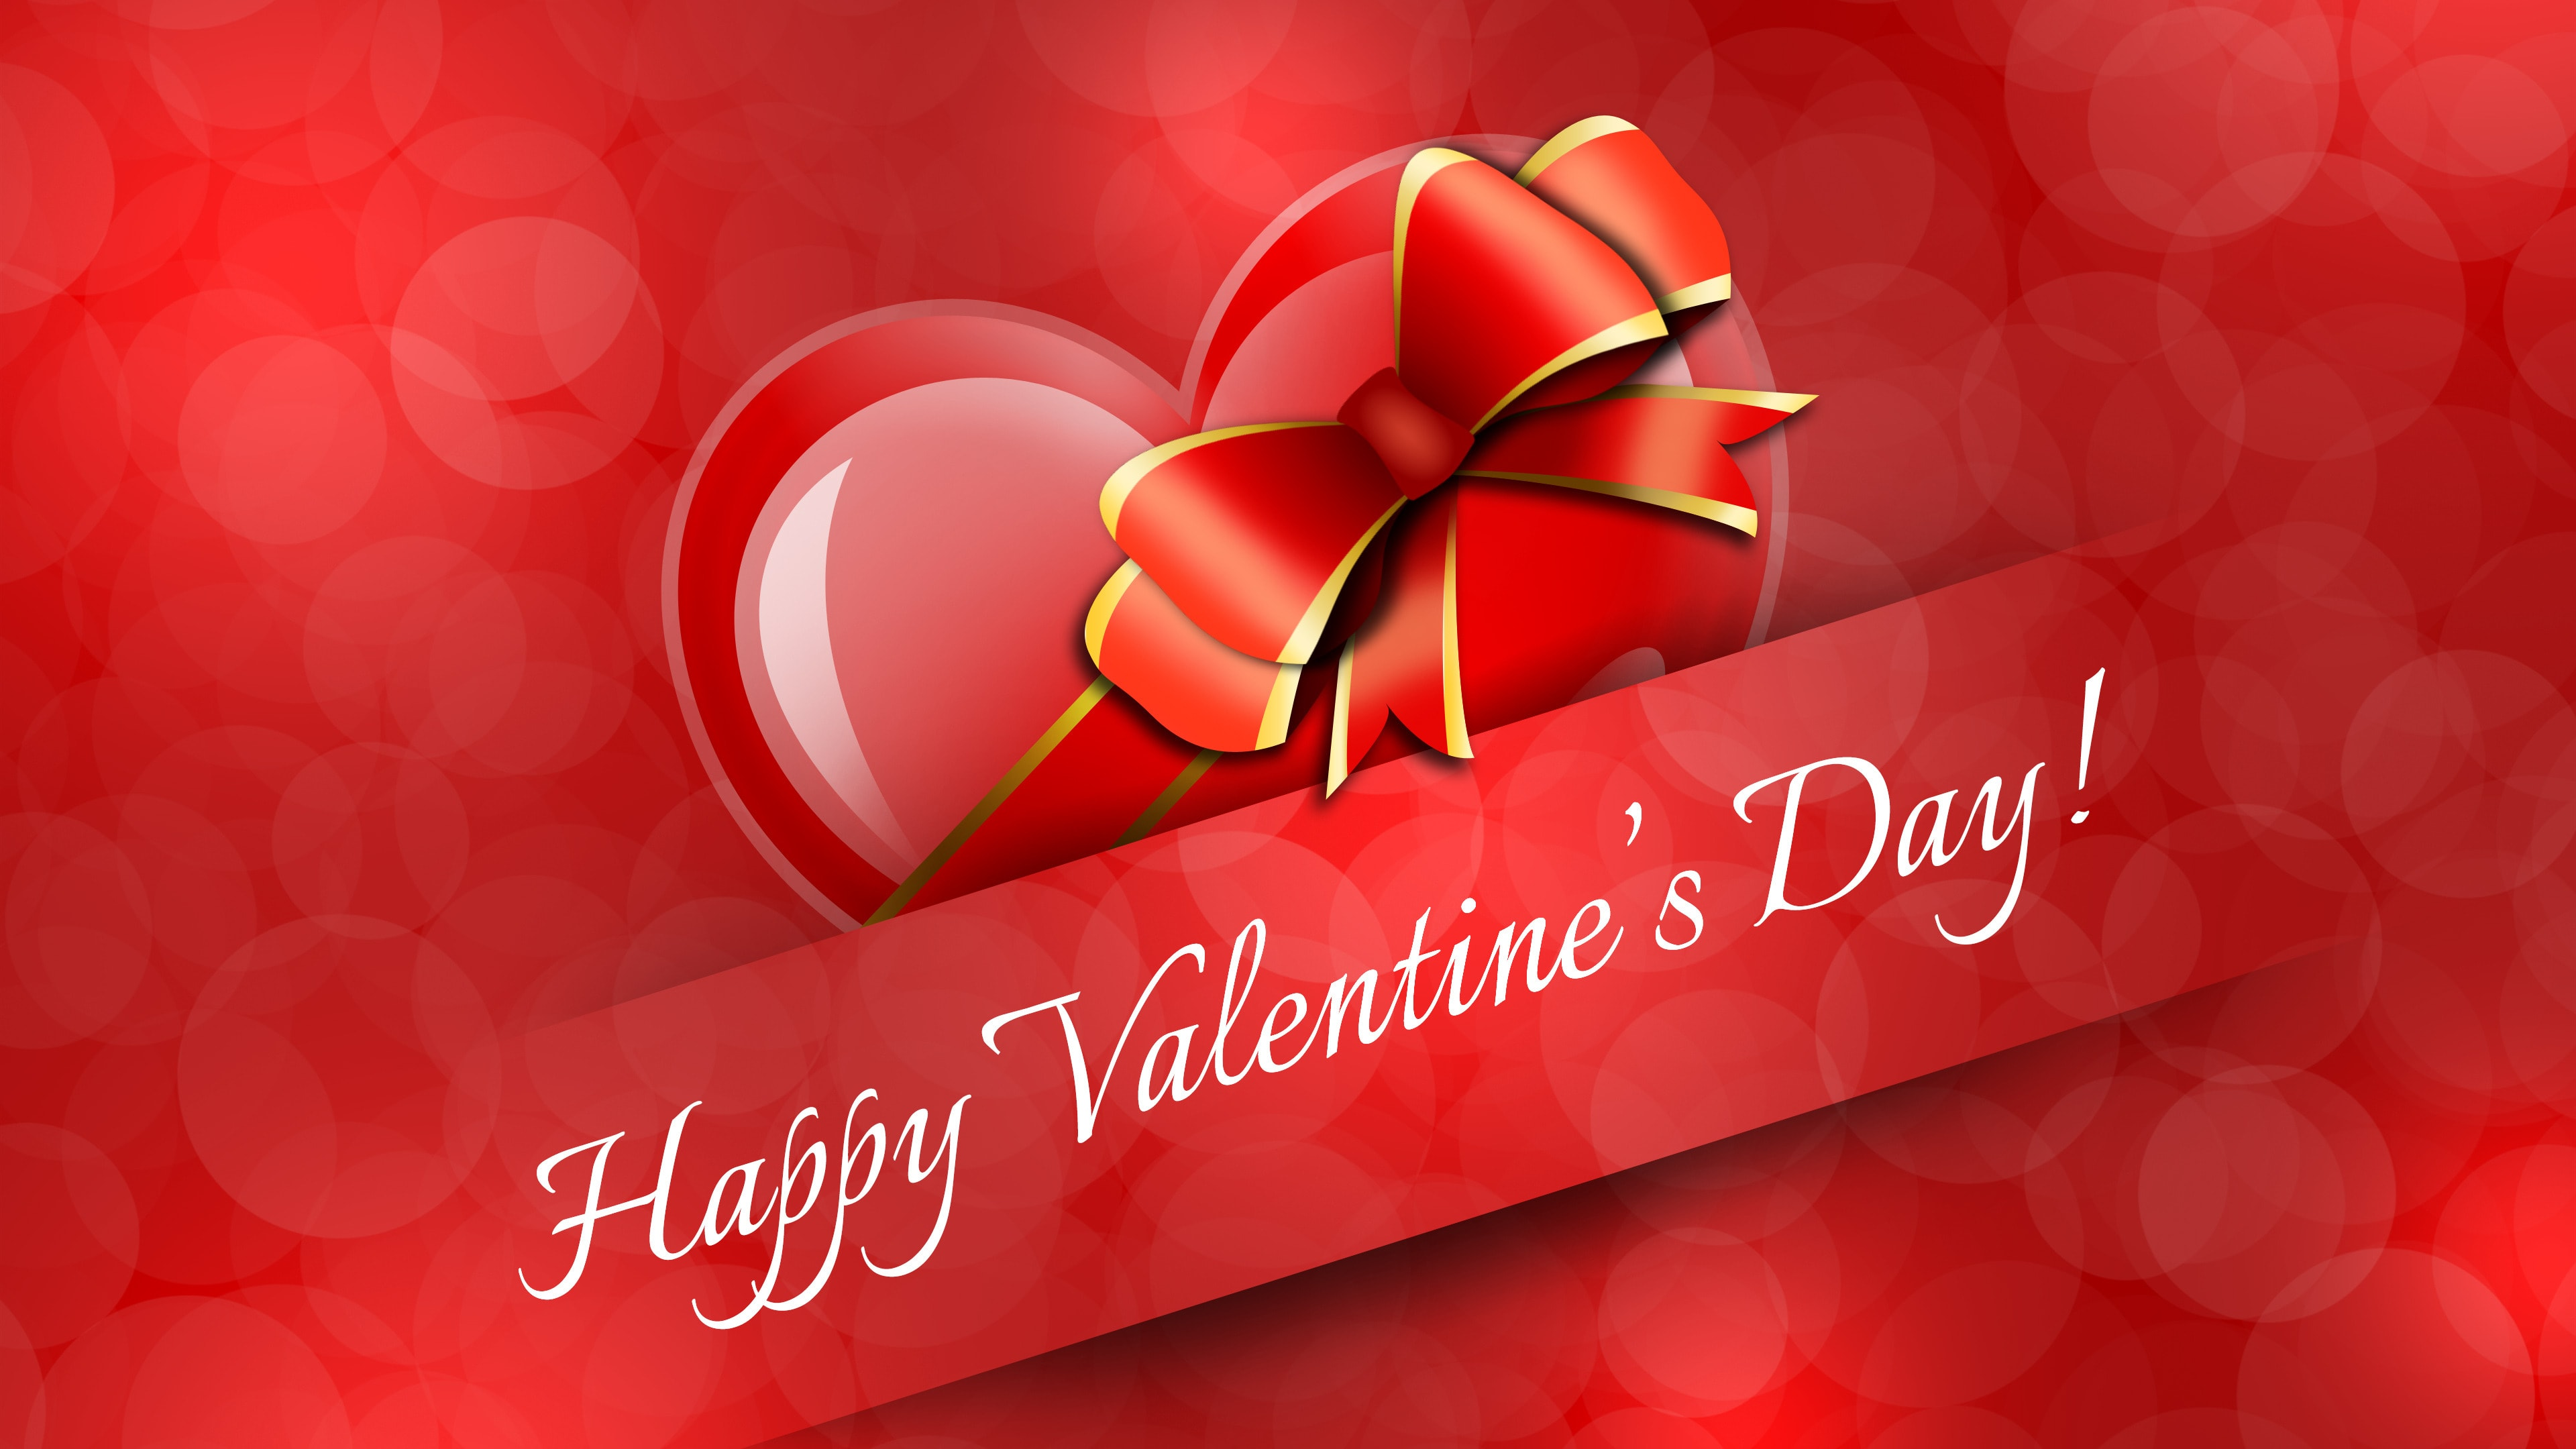 Short Valentine's Wishes Day for Wife in 2018